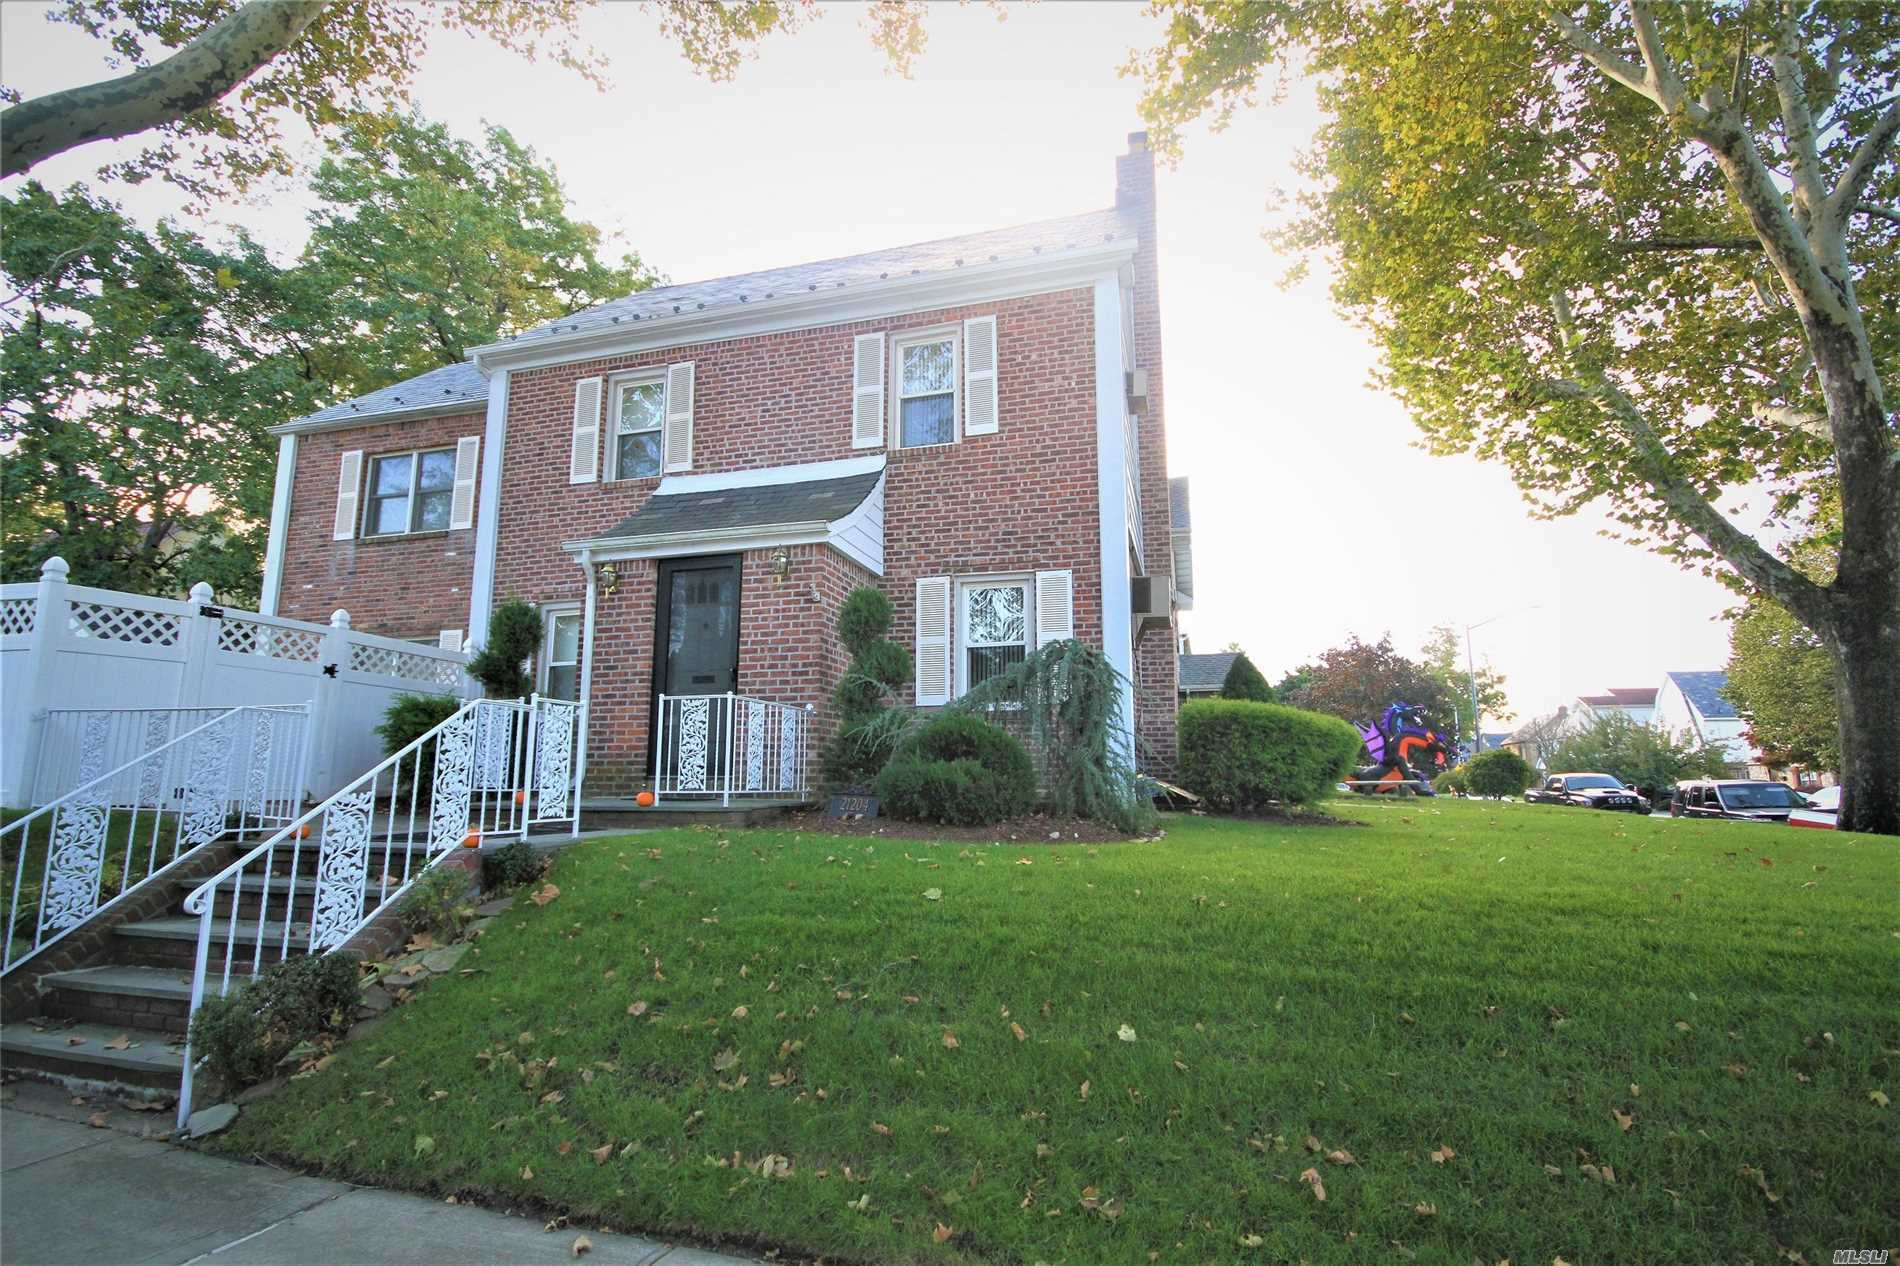 Detached And Expanded Brick Colonial On A Bayside Hills Corner Property; Featuring An Ensuite Master Bedroom, Living Room With Fireplace, Finished Basement, H/W Floors And An Eat-In Kitchen That Opens To A Family Room With Sliding Doors To A Private Patio And Hot Tub. Lots Of Improvements Including New 3-Zone Gas Heat And In-Ground Lawn Sprinklers. Great Location Near Mass Transit (Q27 And Q31 Buses) And Schools (Ps 203 And Ms 158).